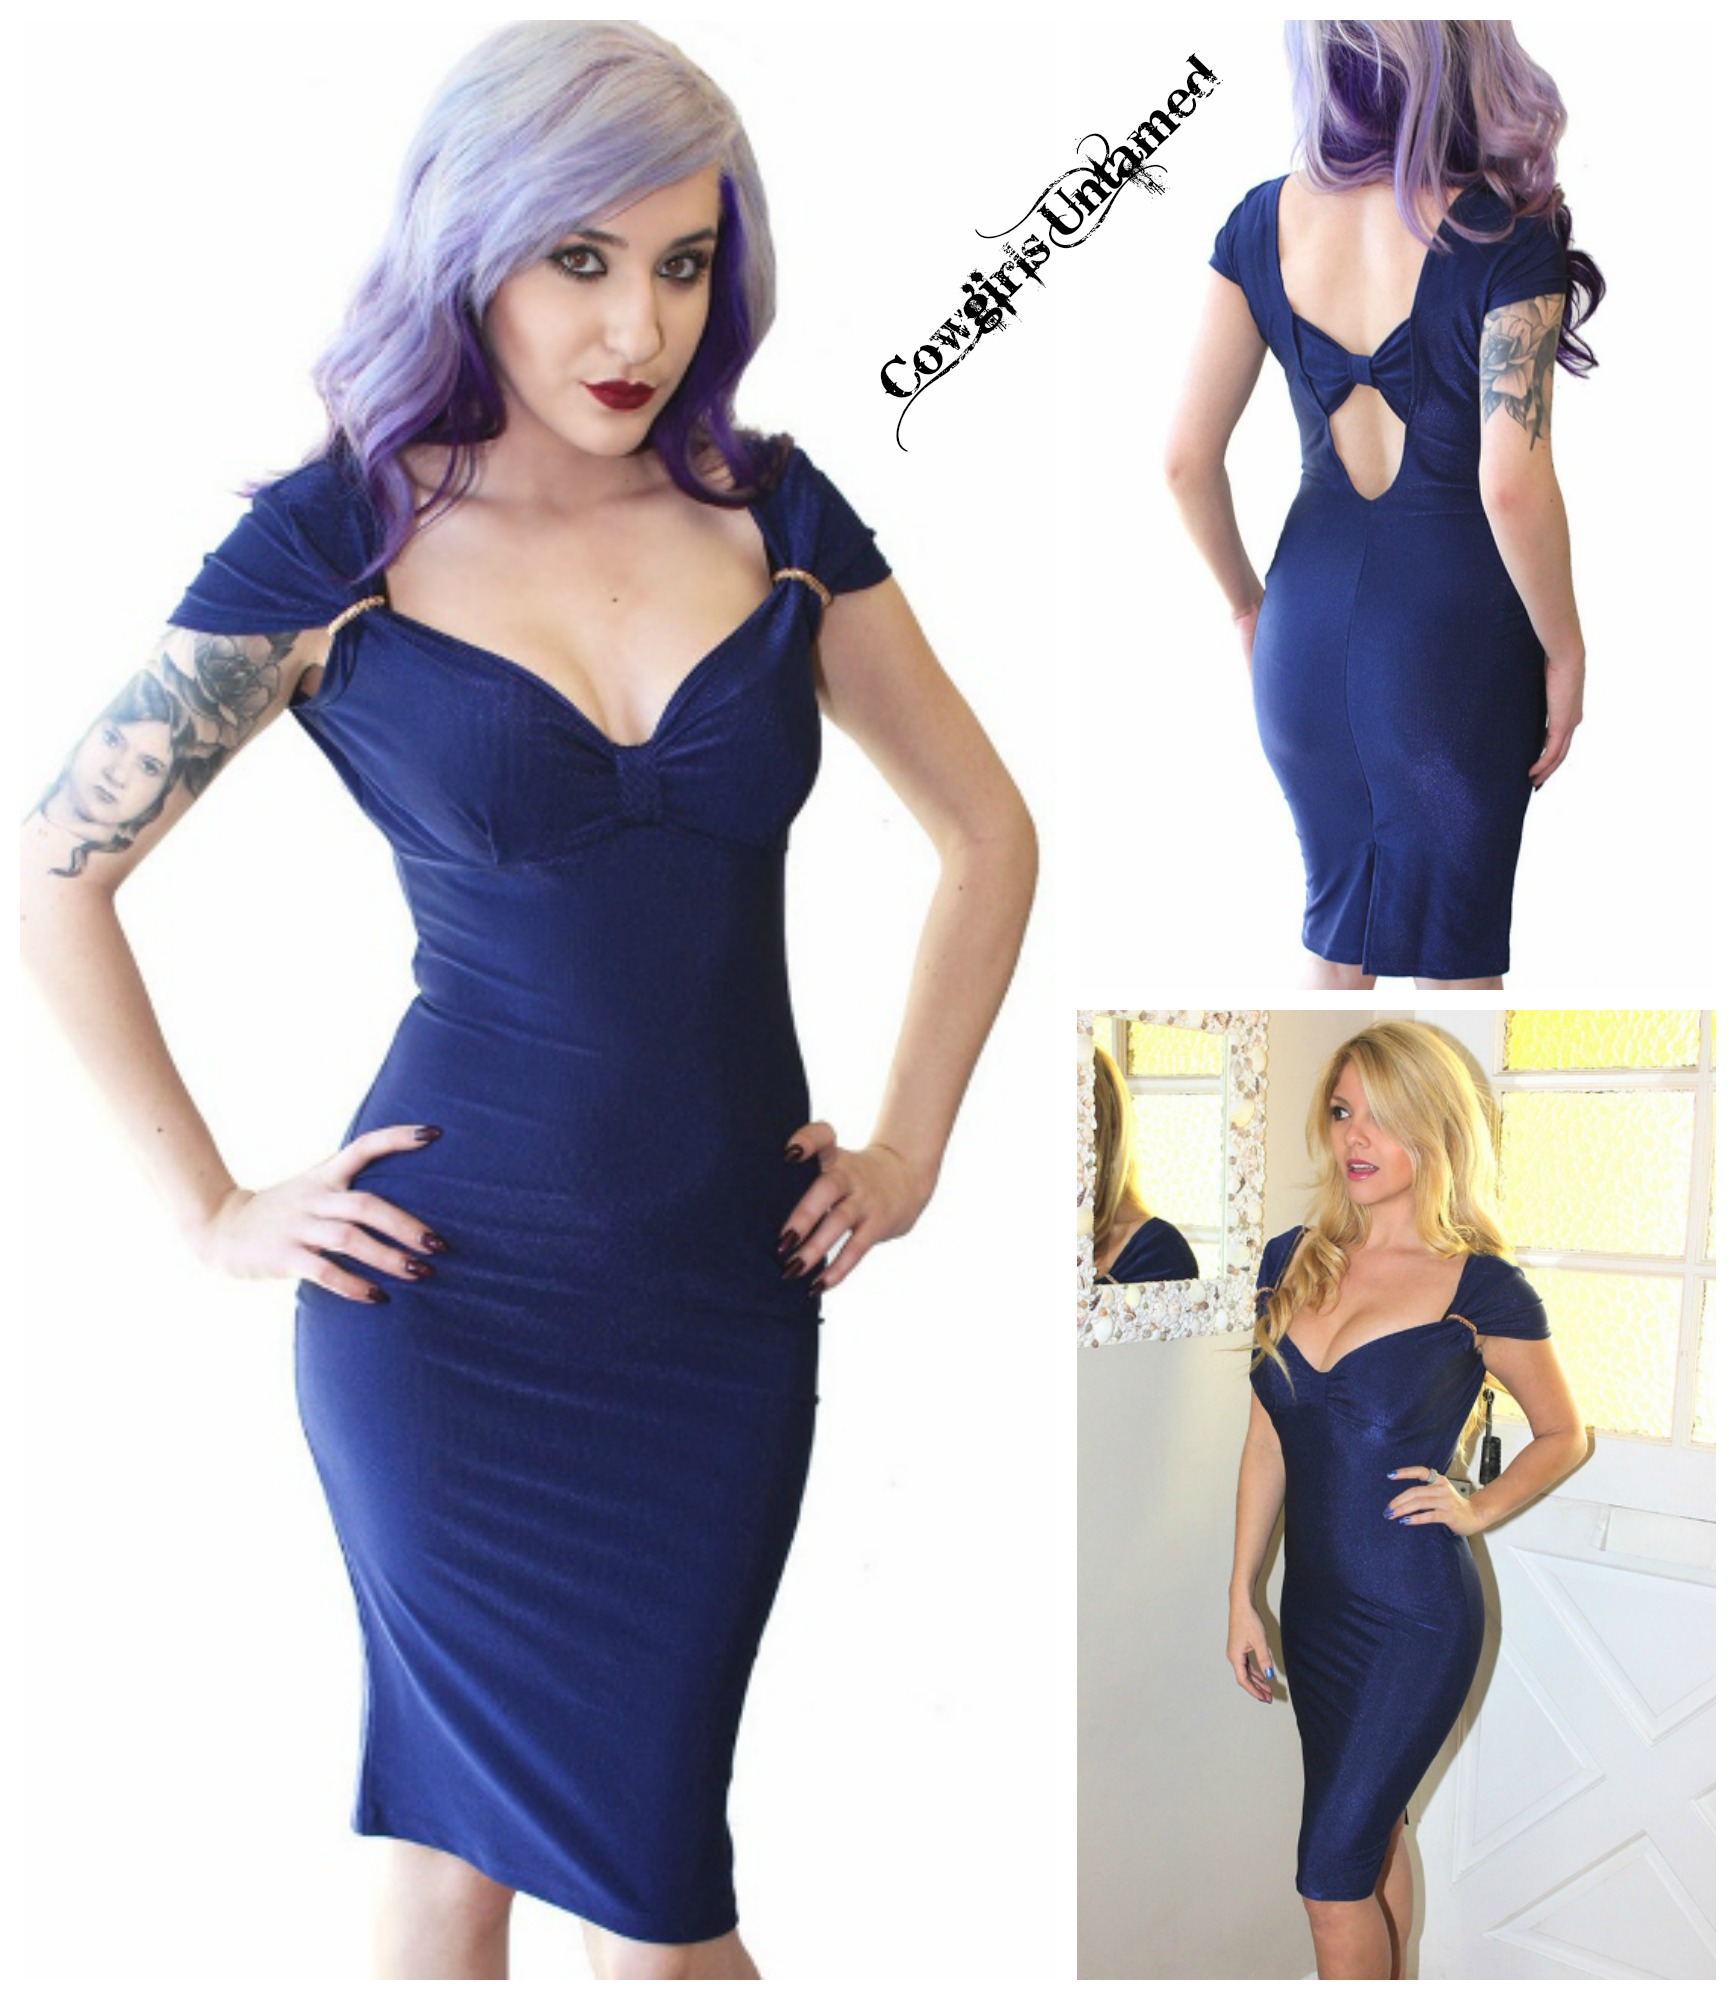 COWGIRL GLAM DRESS Midnight Blue Sweetheart Neckline with Bow Low Back Dress